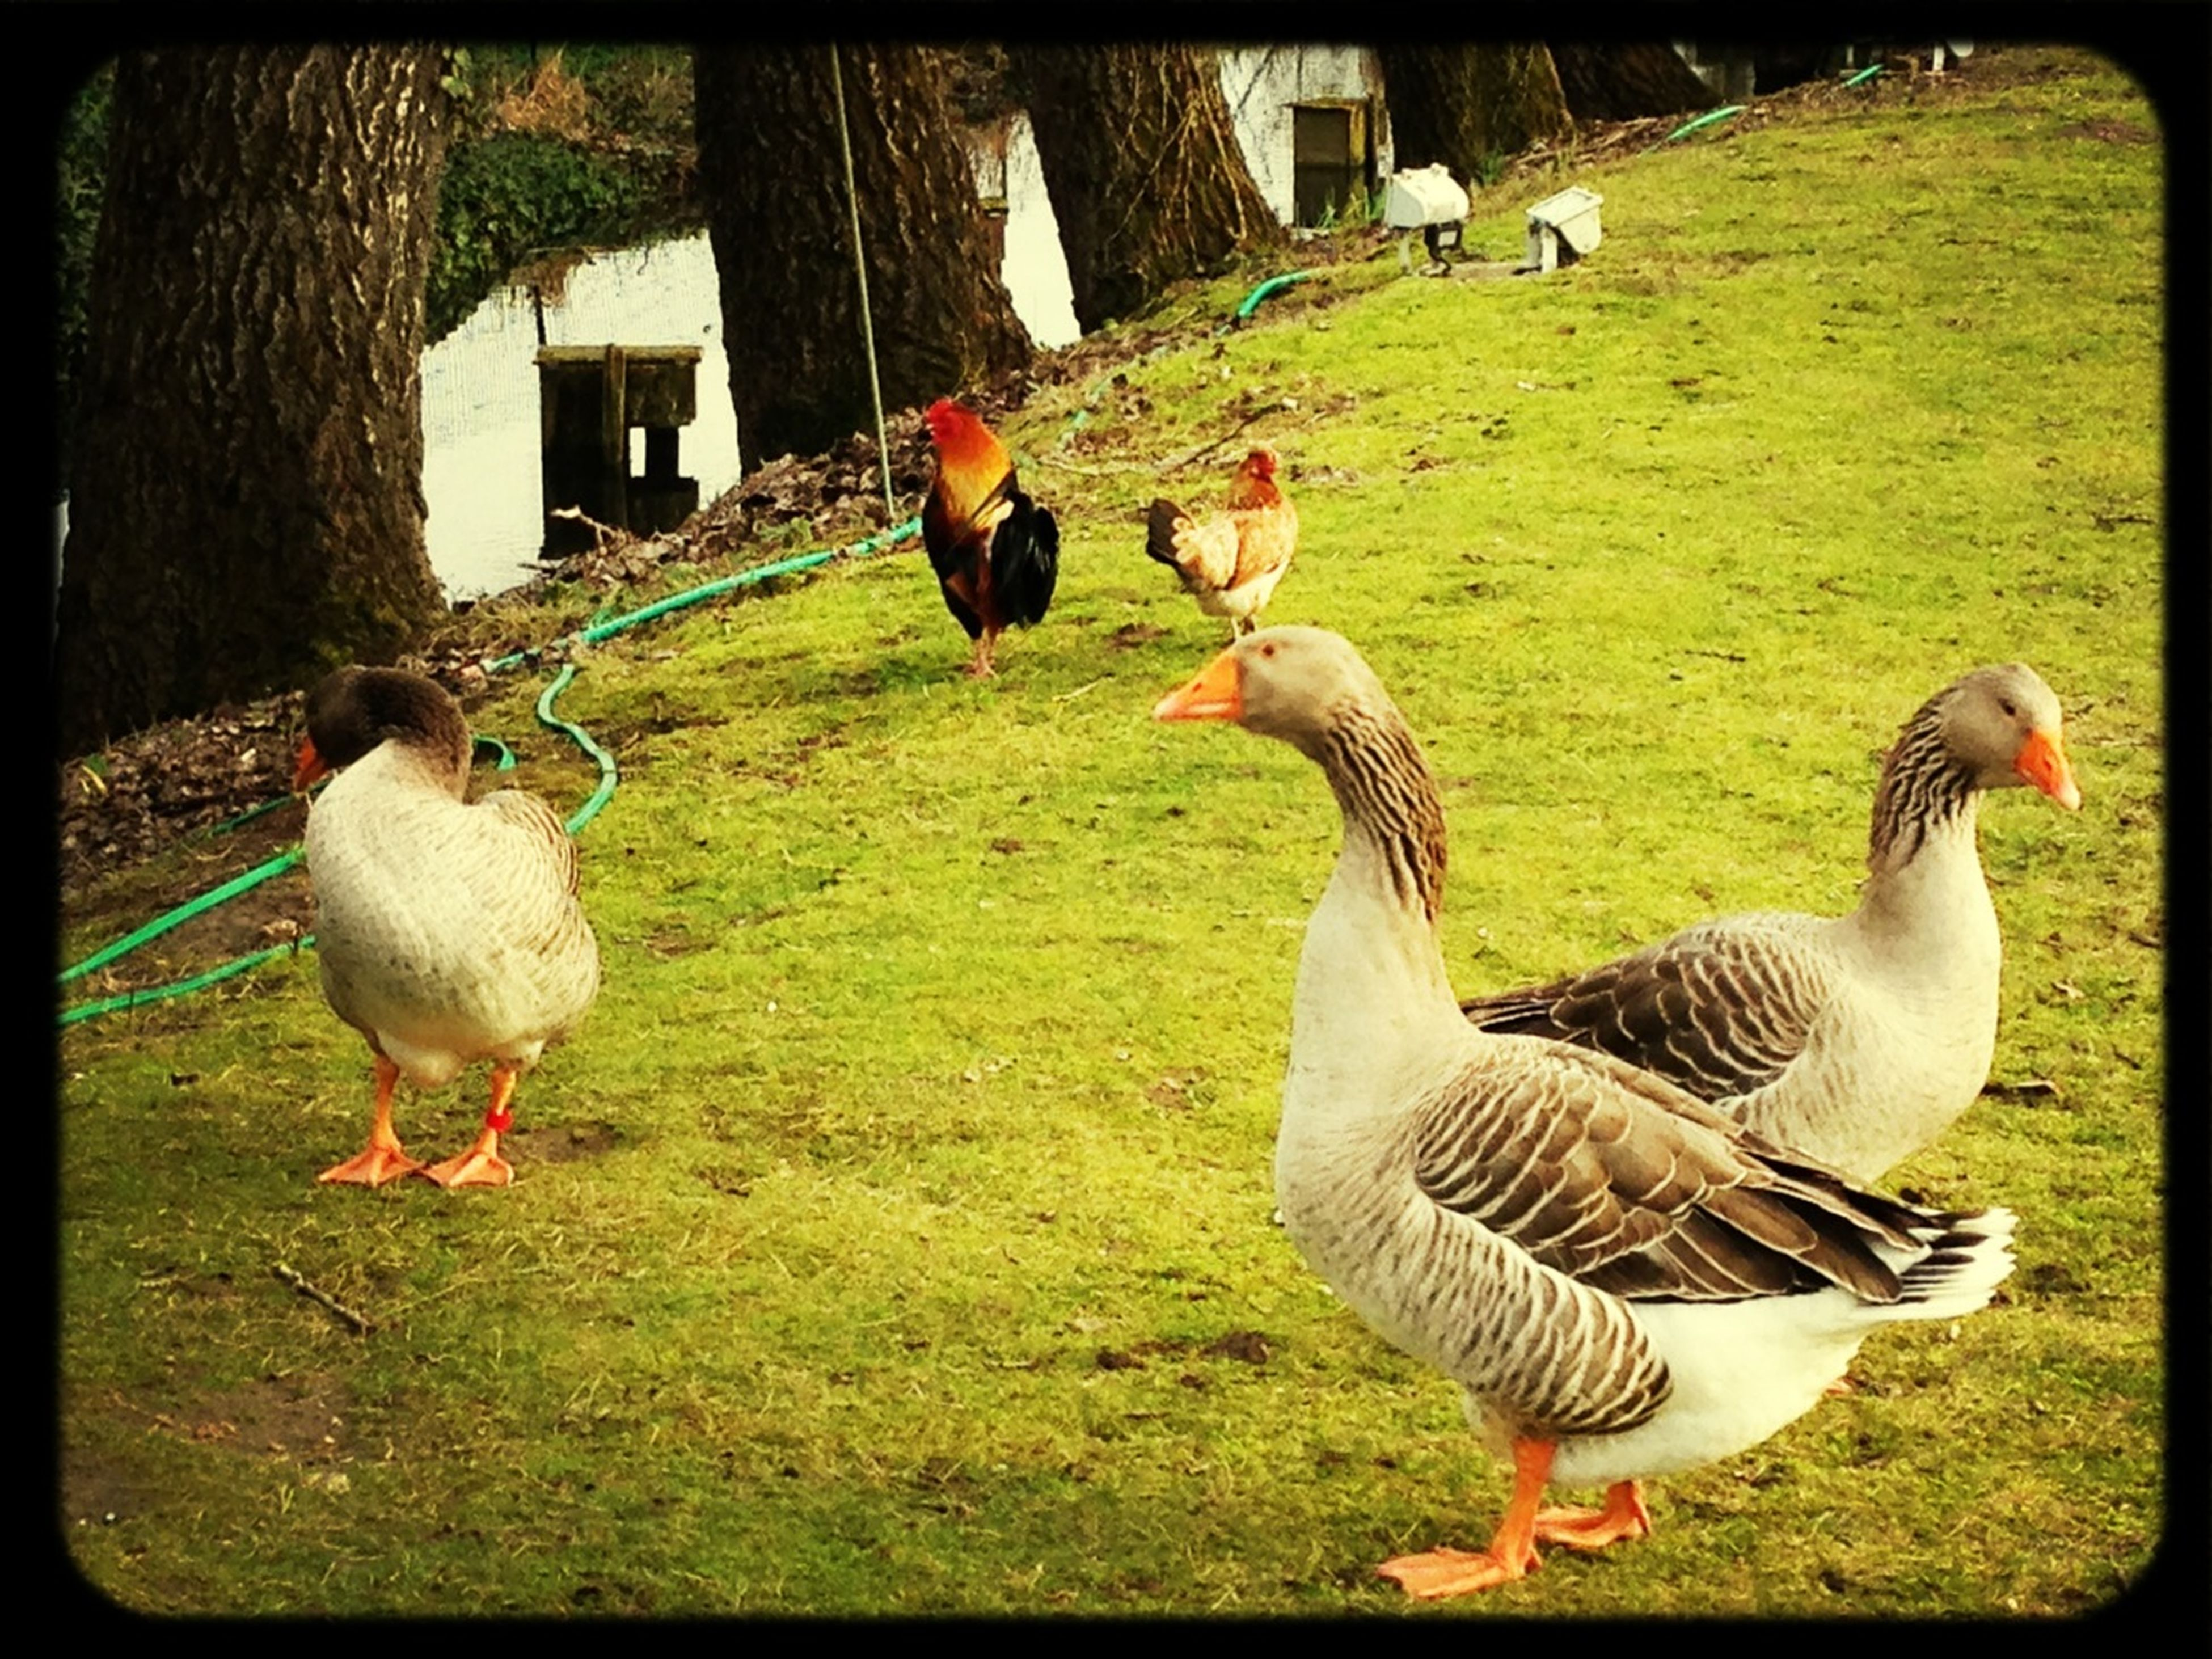 bird, animal themes, grass, animals in the wild, wildlife, transfer print, duck, field, two animals, auto post production filter, grassy, togetherness, green color, nature, three animals, goose, outdoors, sunlight, beak, day